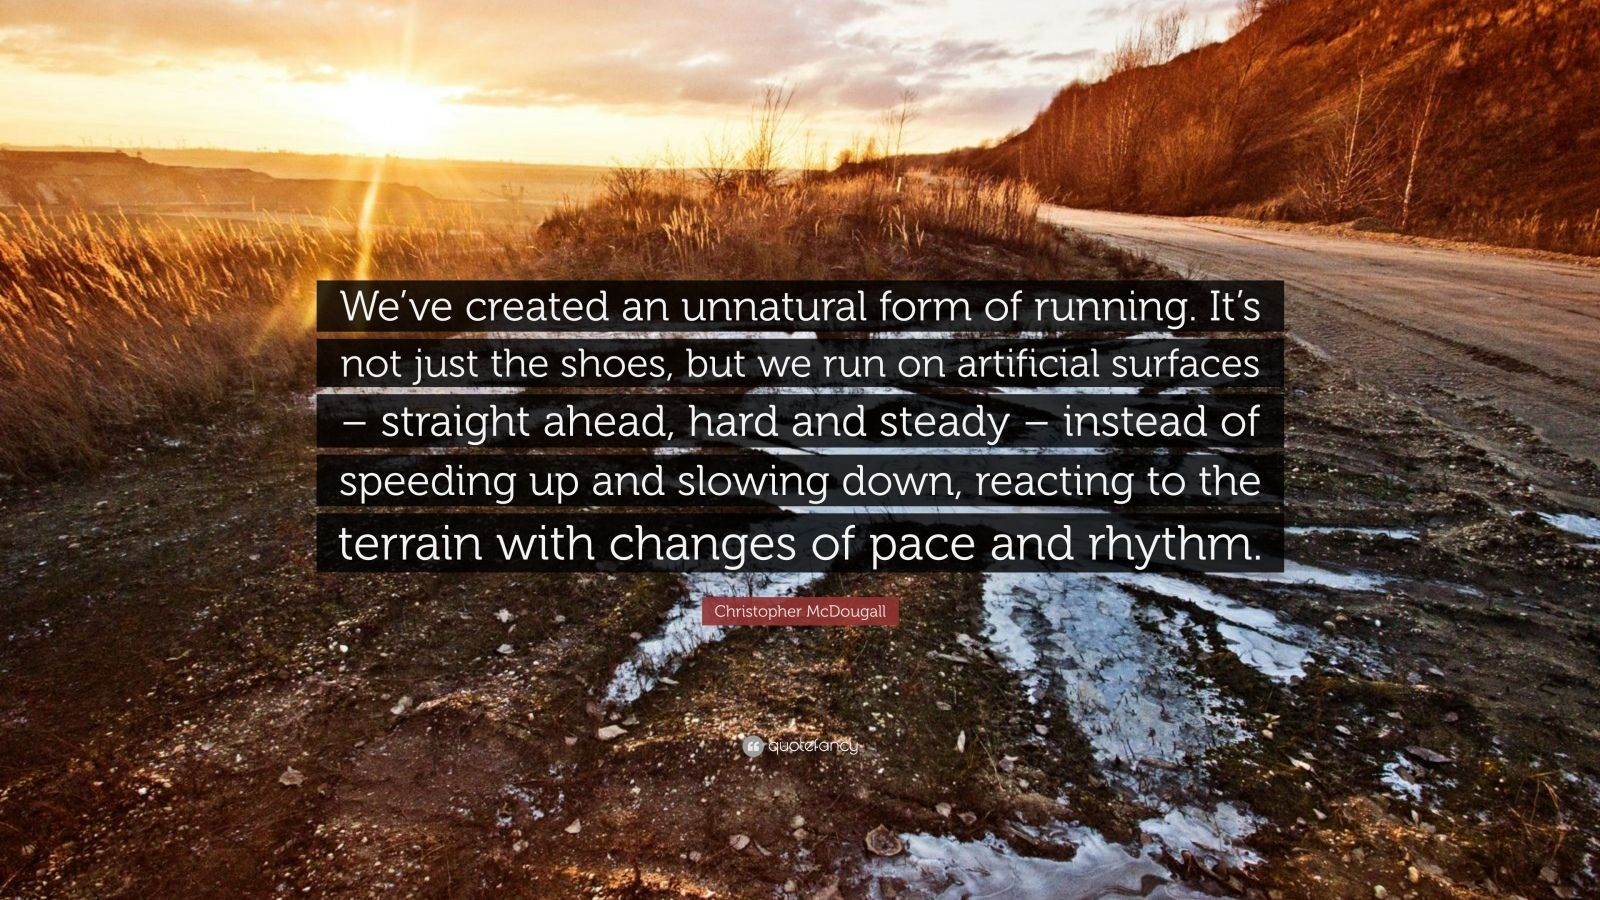 """Christopher McDougall Quote: """"We've created an unnatural form of running. It's not just the shoes, but we run on artificial surfaces – straight ahead, hard and steady – instead of speeding up and slowing down, reacting to the terrain with changes of pace and rhythm."""""""